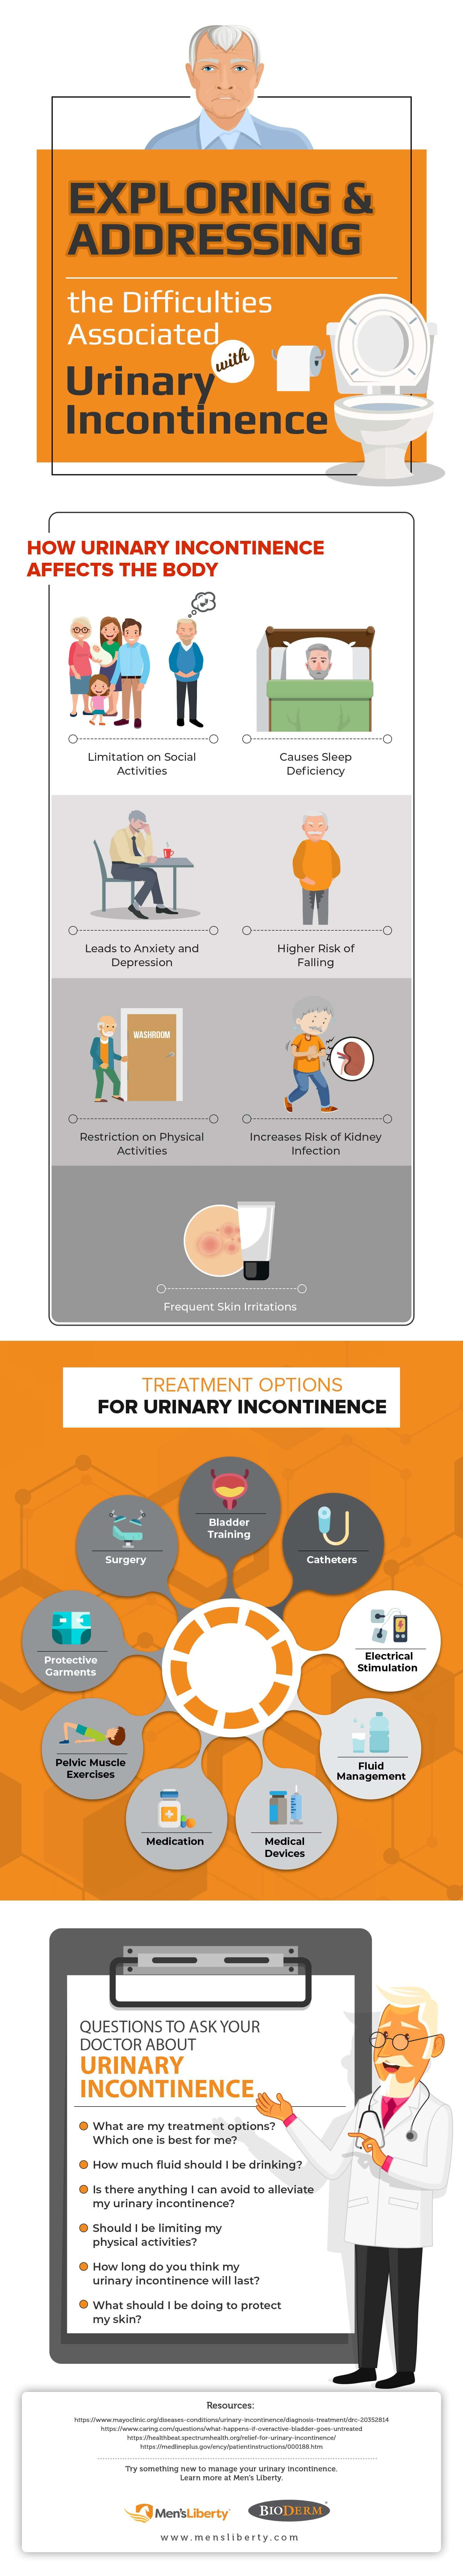 Exploring and Addressing the Difficulties Associated with Urinary Incontinence Introduction